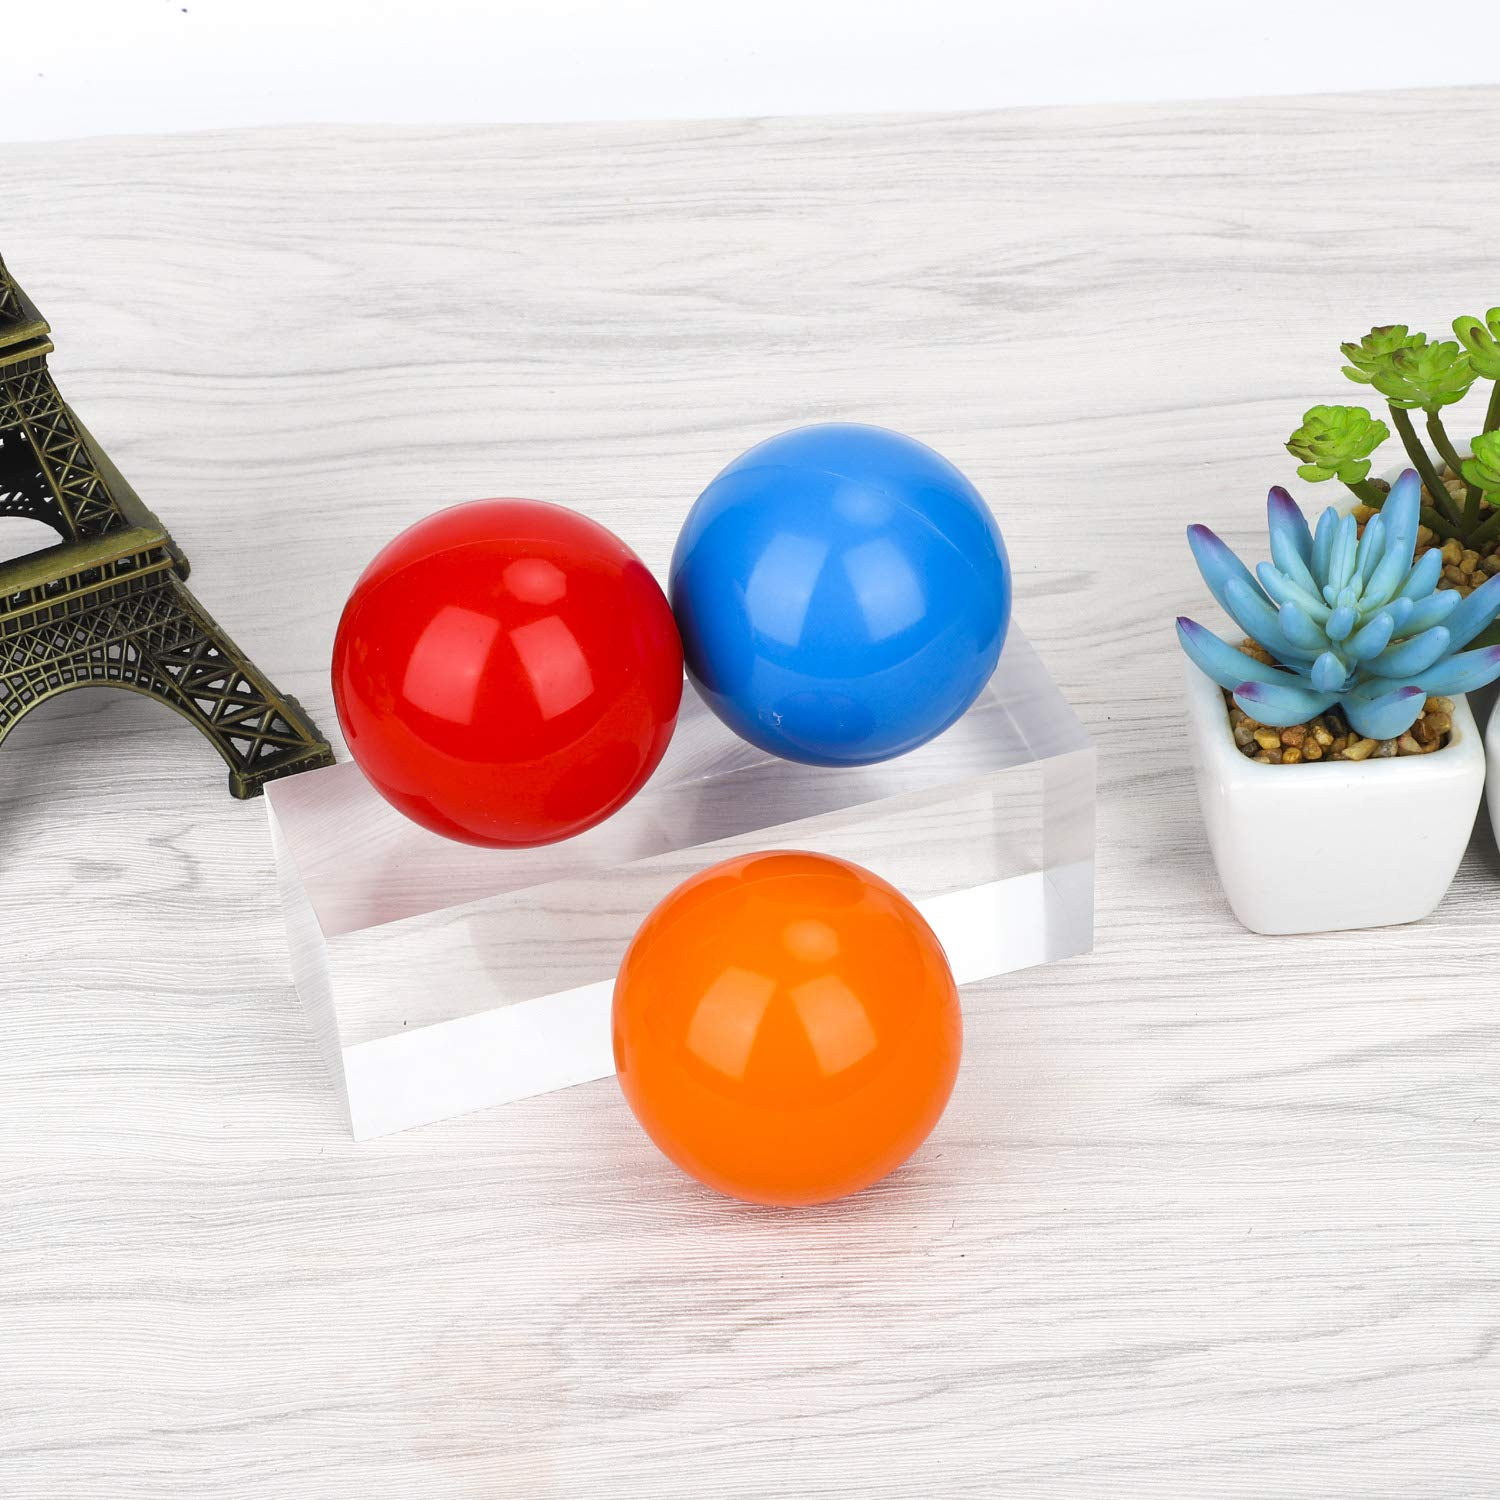 YuXing Professional Juggling Ball Set, for Beginners&Professionals, 2.6'', Set of 3 (Red Blue Orange) by YuXing TOY (Image #6)